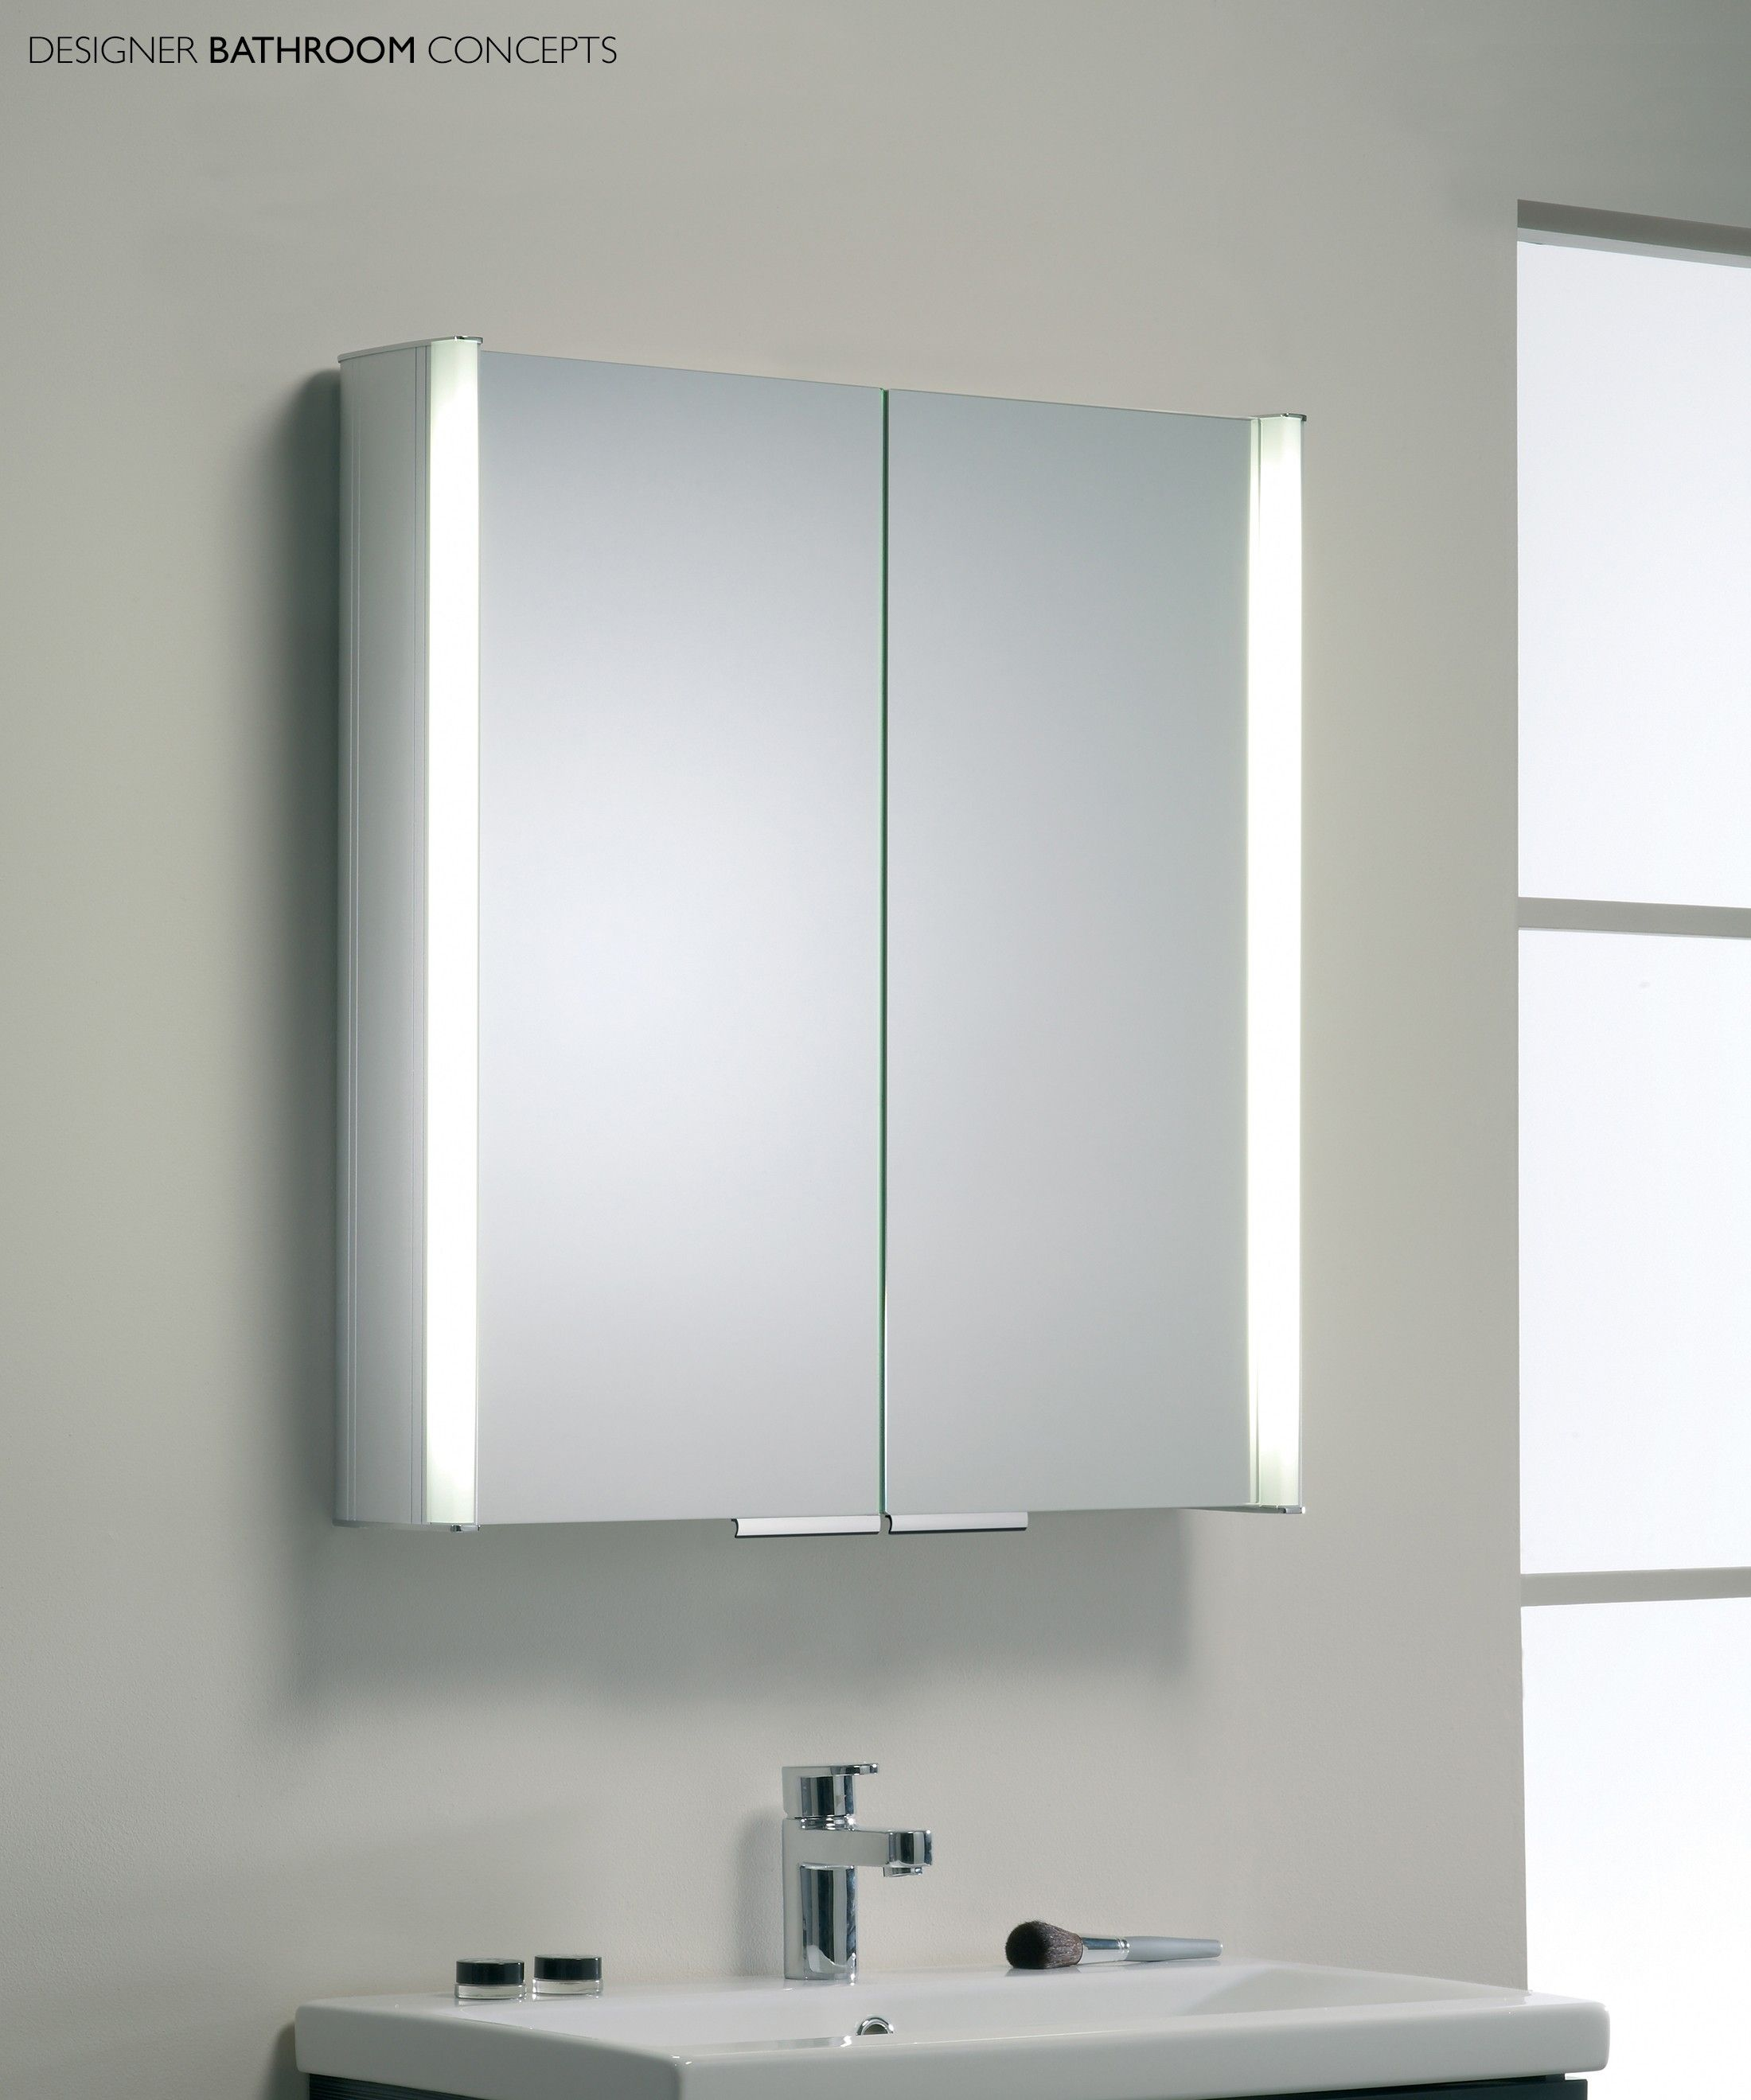 Stainless Steel Mirrored Bathroom Wall Cabinets | http://drrw.us ...